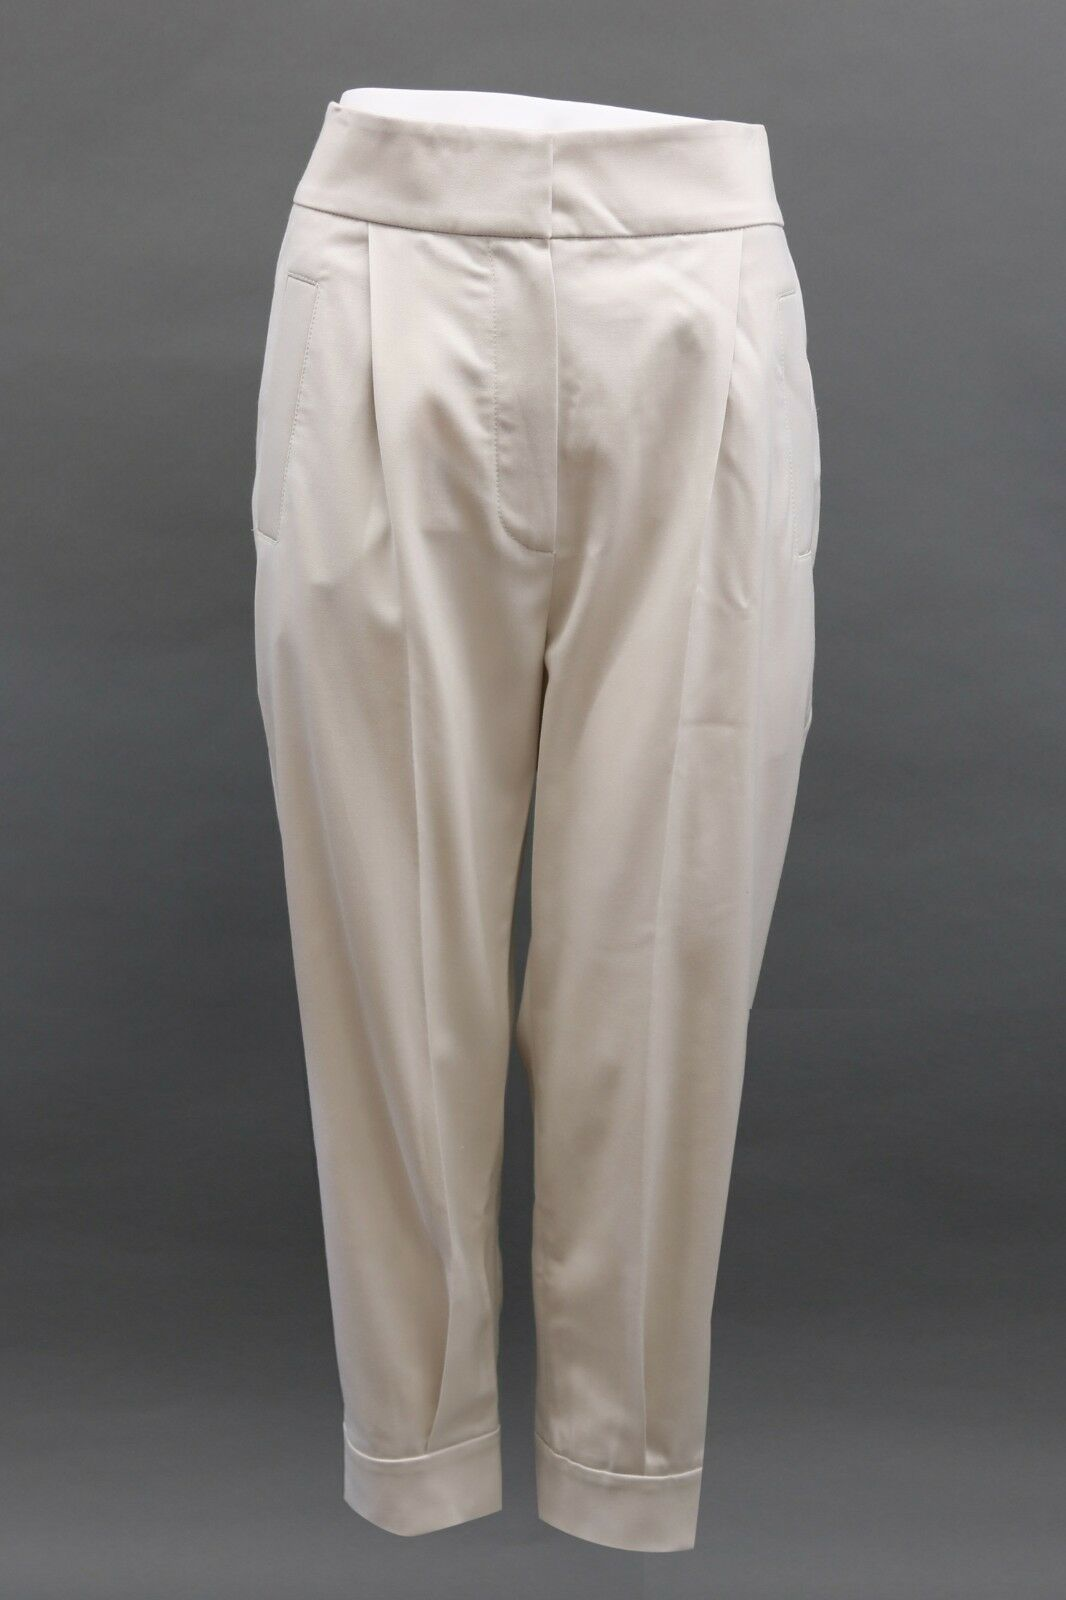 NWT 1325 Brunello Cucinelli Soft Fine VWool Knit Taperot Dress Pants 42 6US A181